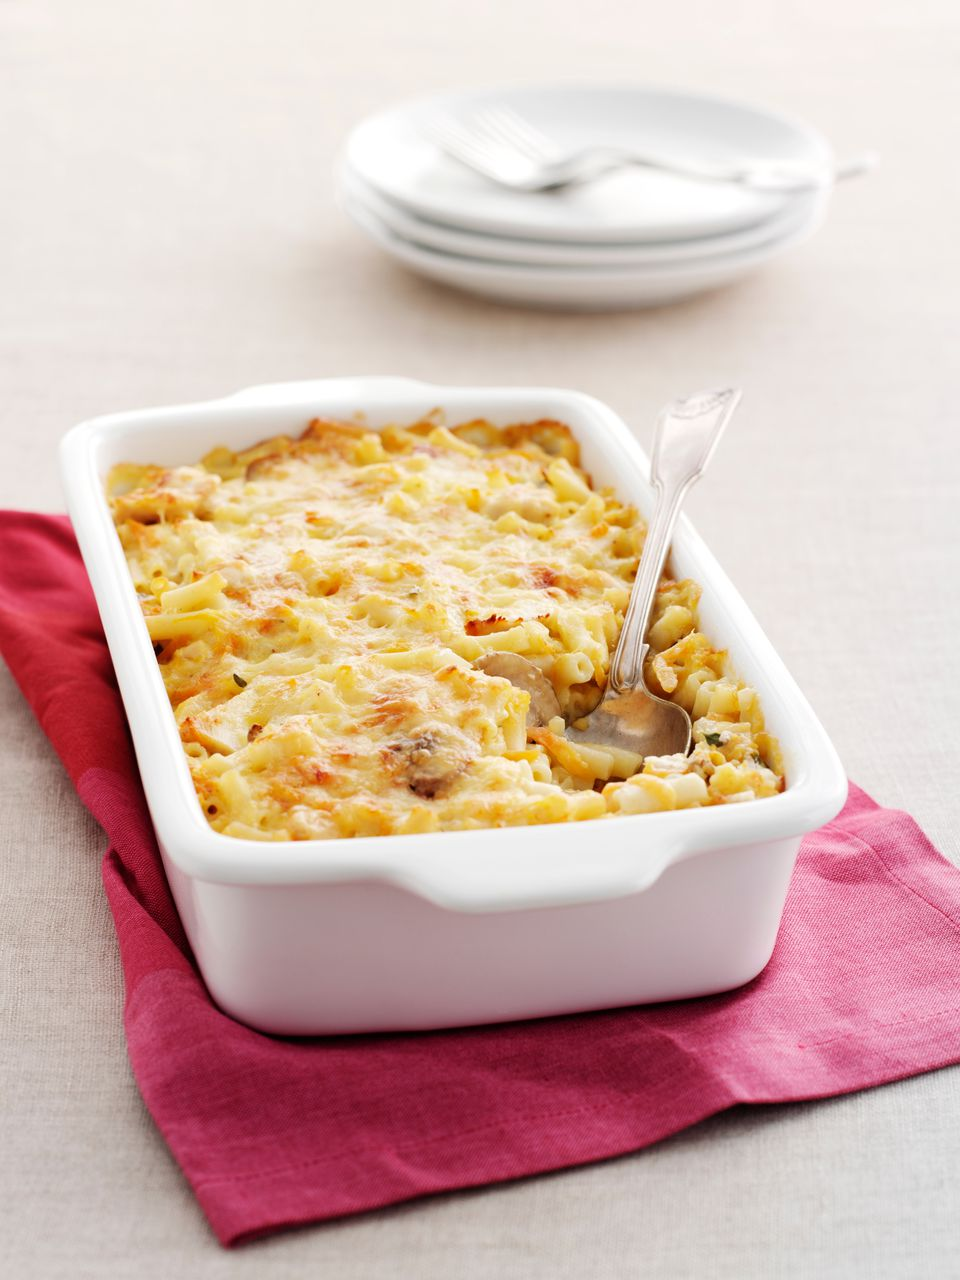 A baking dish with baked macaroni and cheese with mortadella